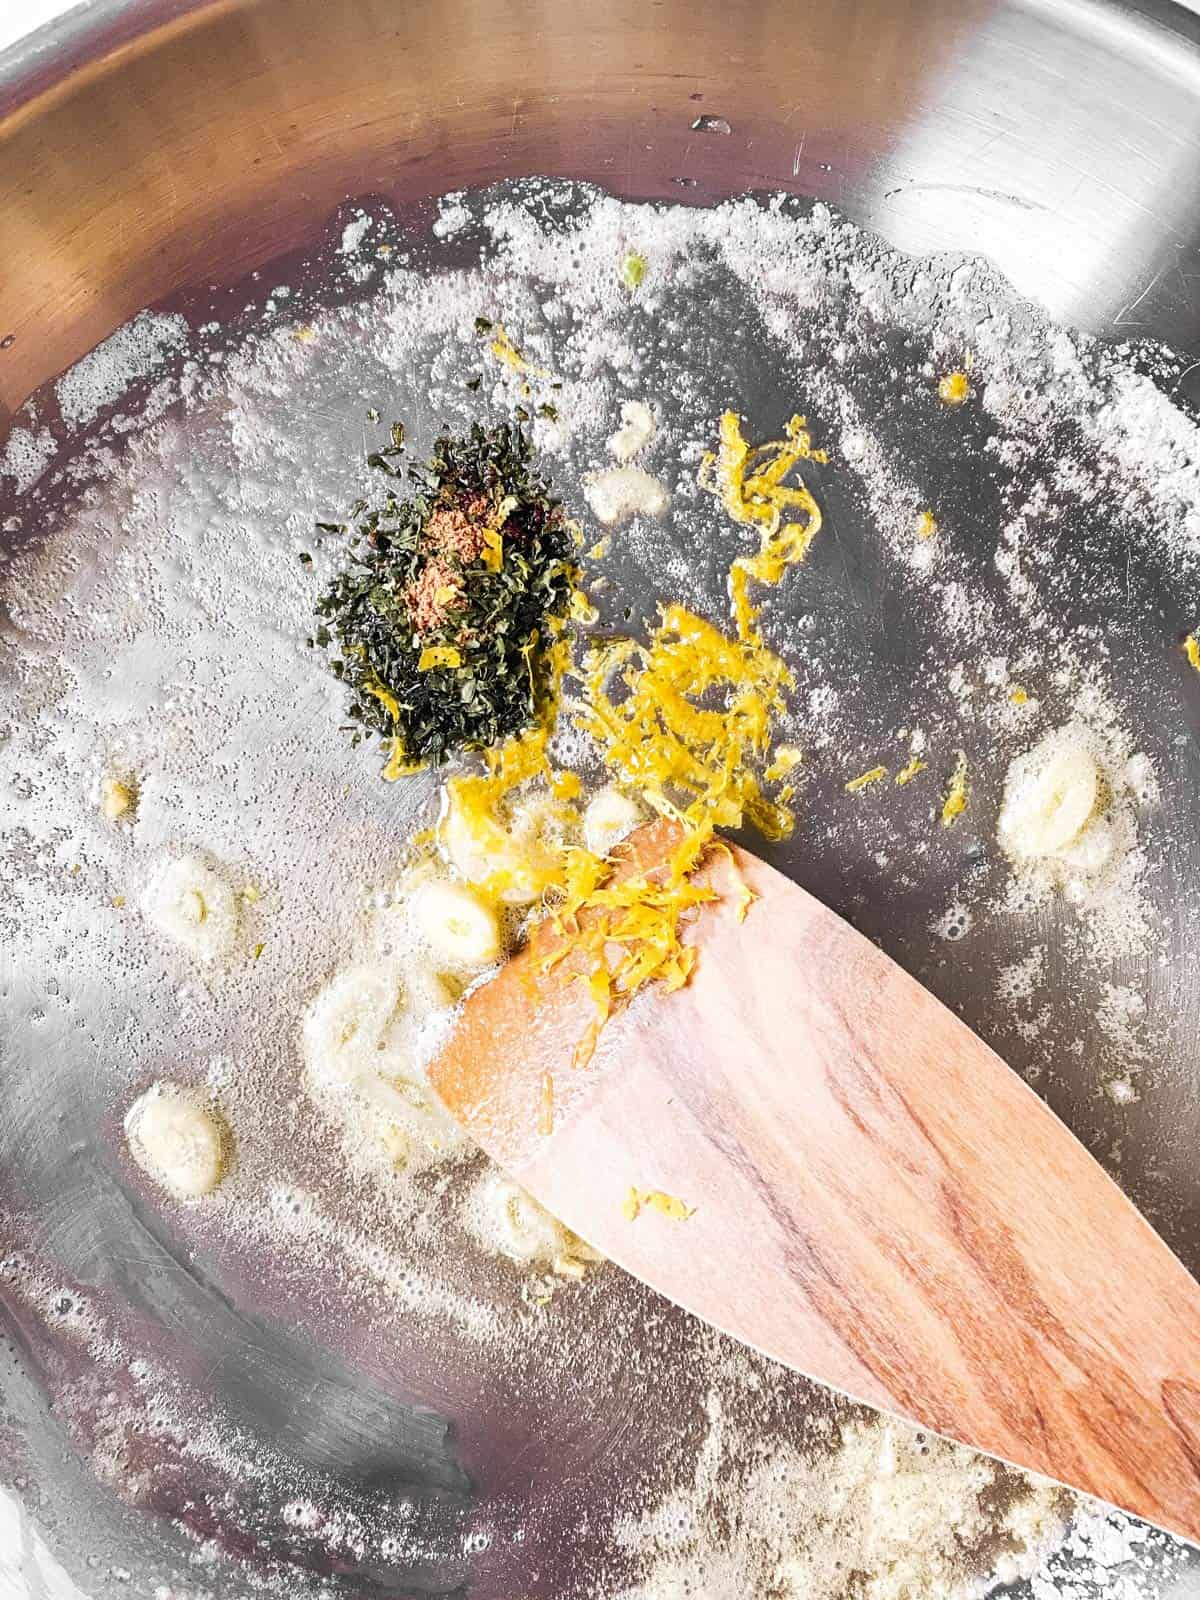 aromatics in butter in skillet with wooden spoon